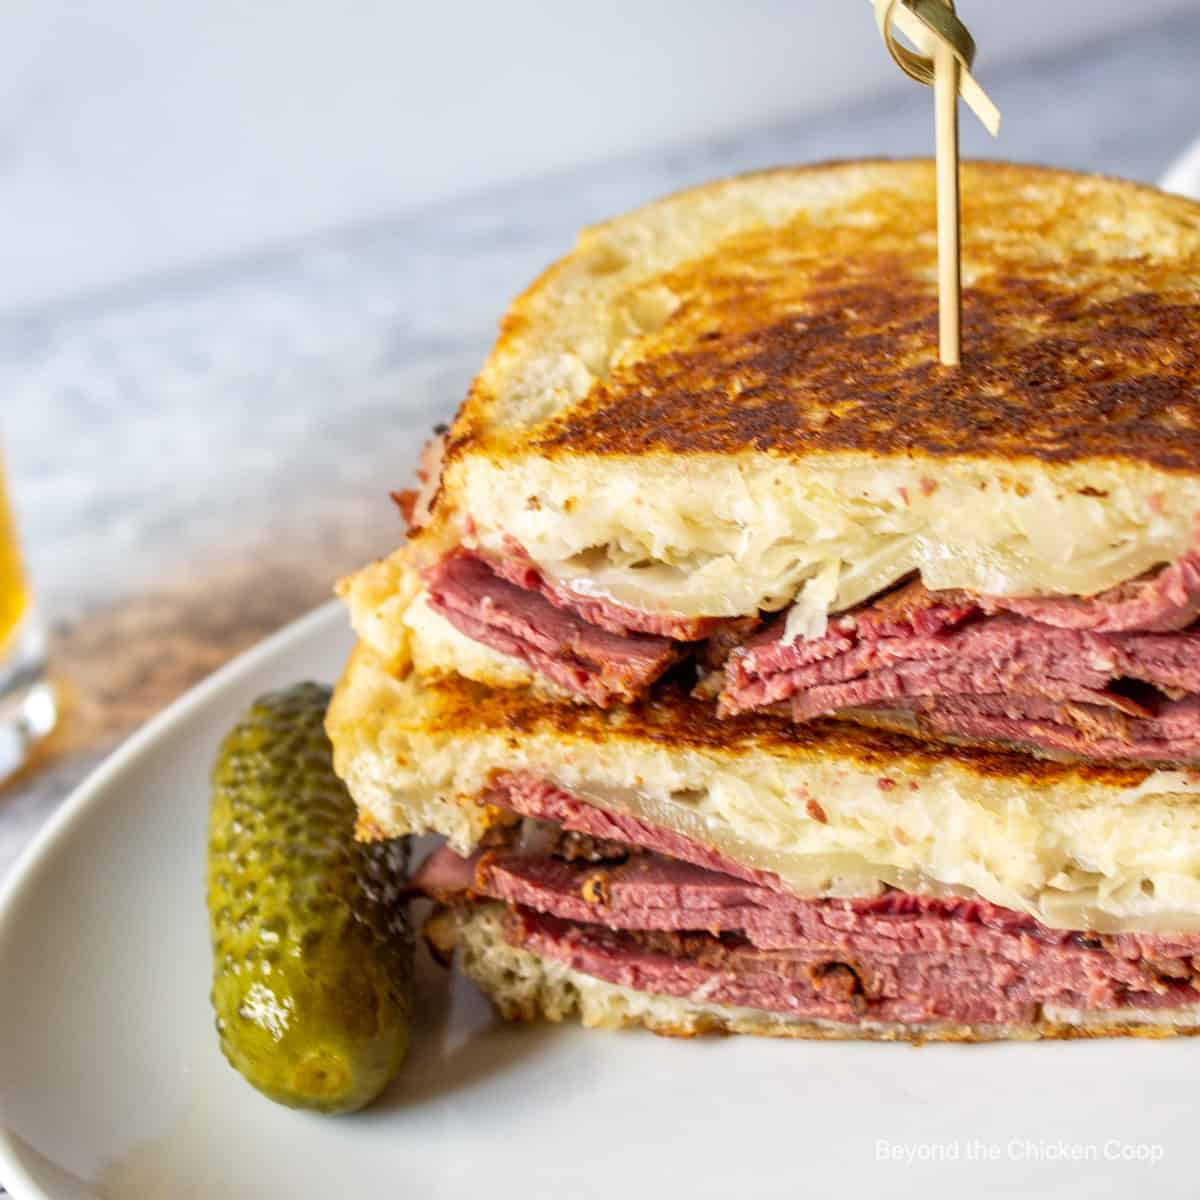 A toasted sandwich with pastrami, sauerkraut and cheese.